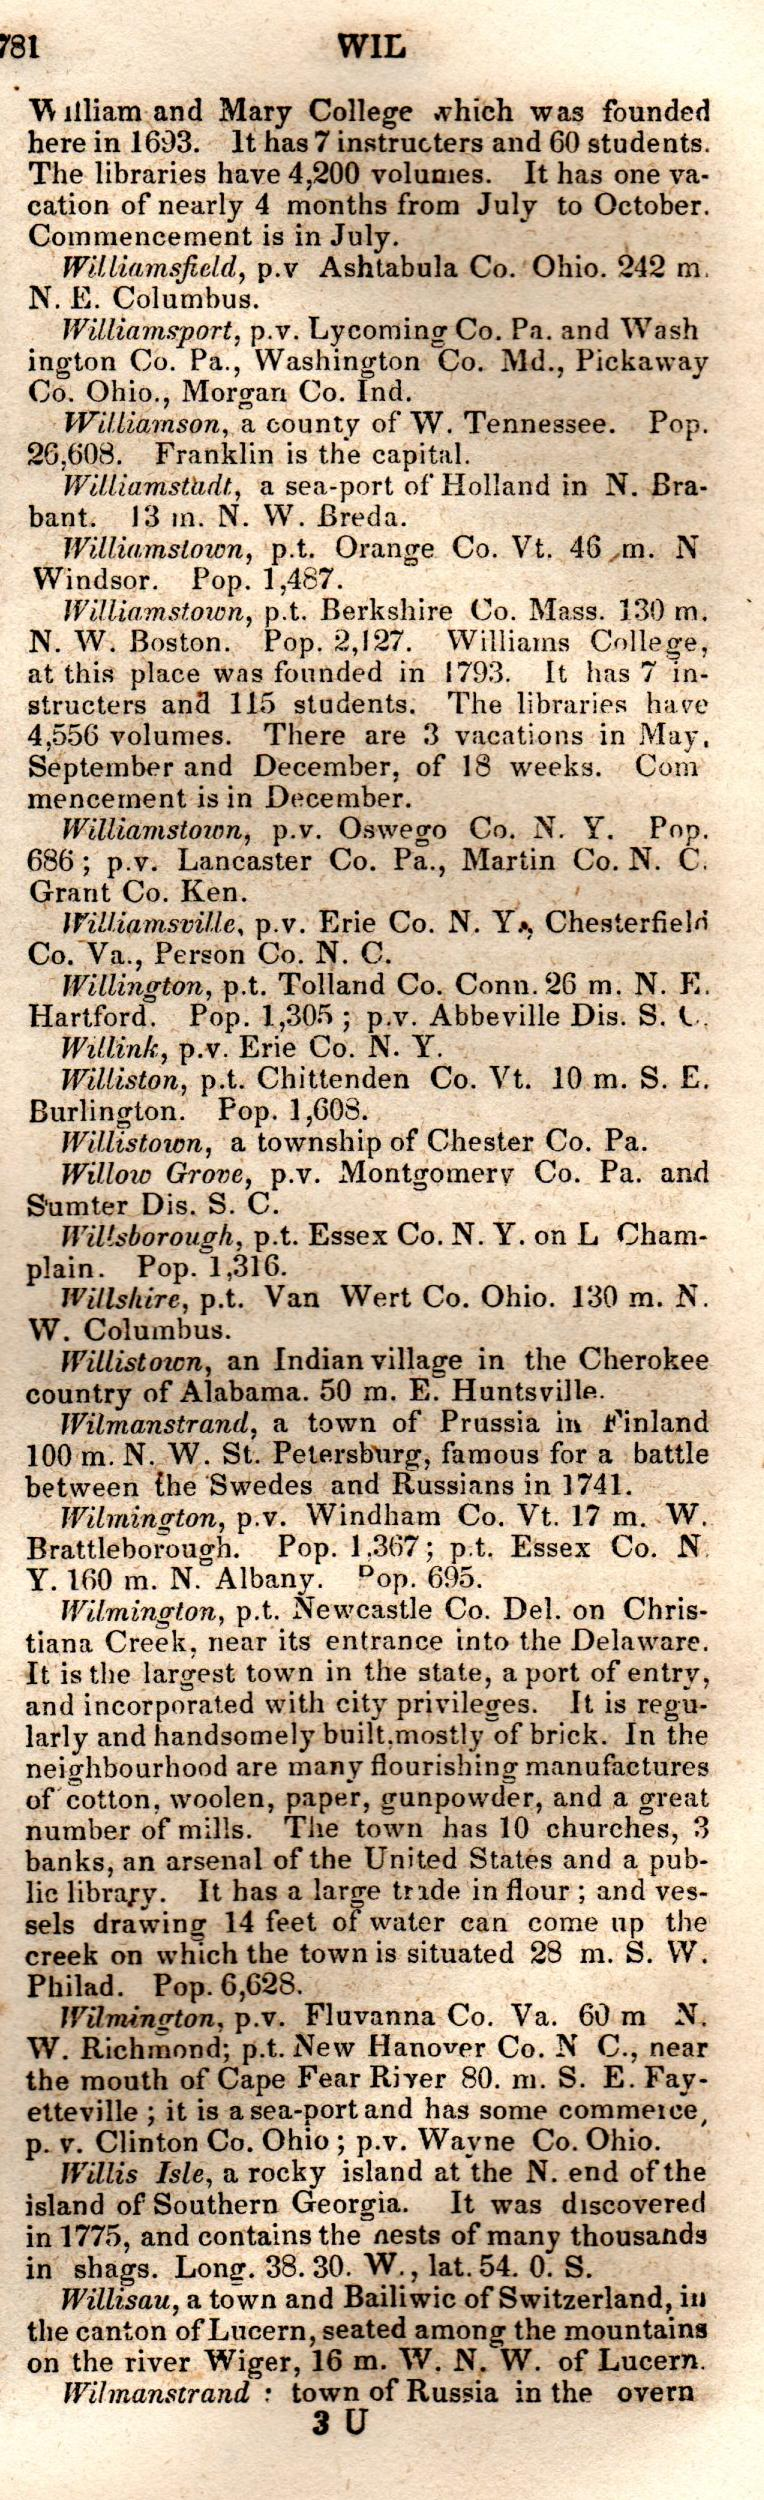 Brookes' Universal Gazetteer (1850), Page  781  Right Column